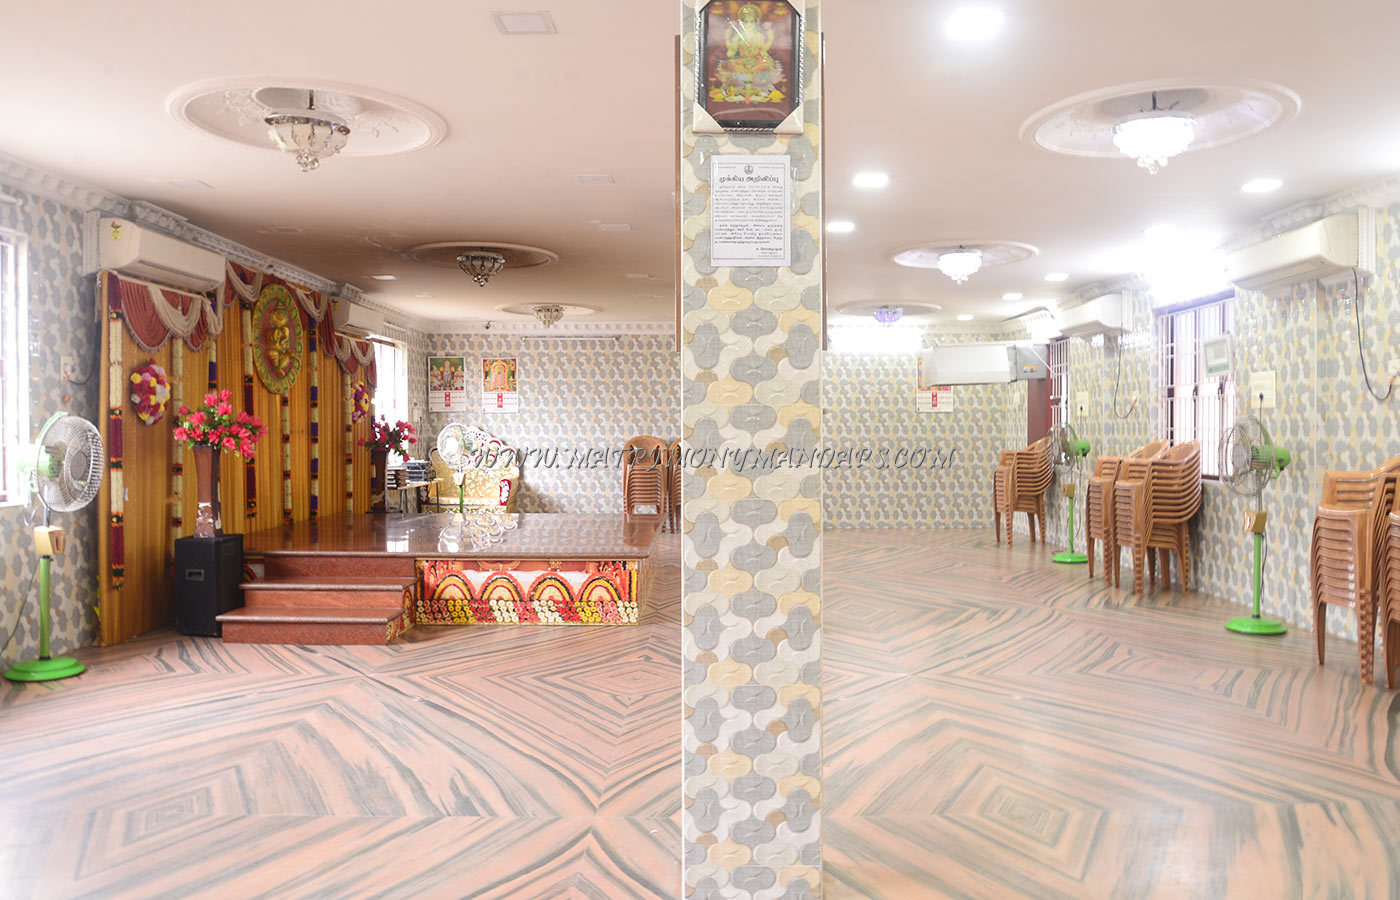 Find the availability of the Shri Subiksham Hall (A/C) in Madambakkam, Chennai and avail special offers